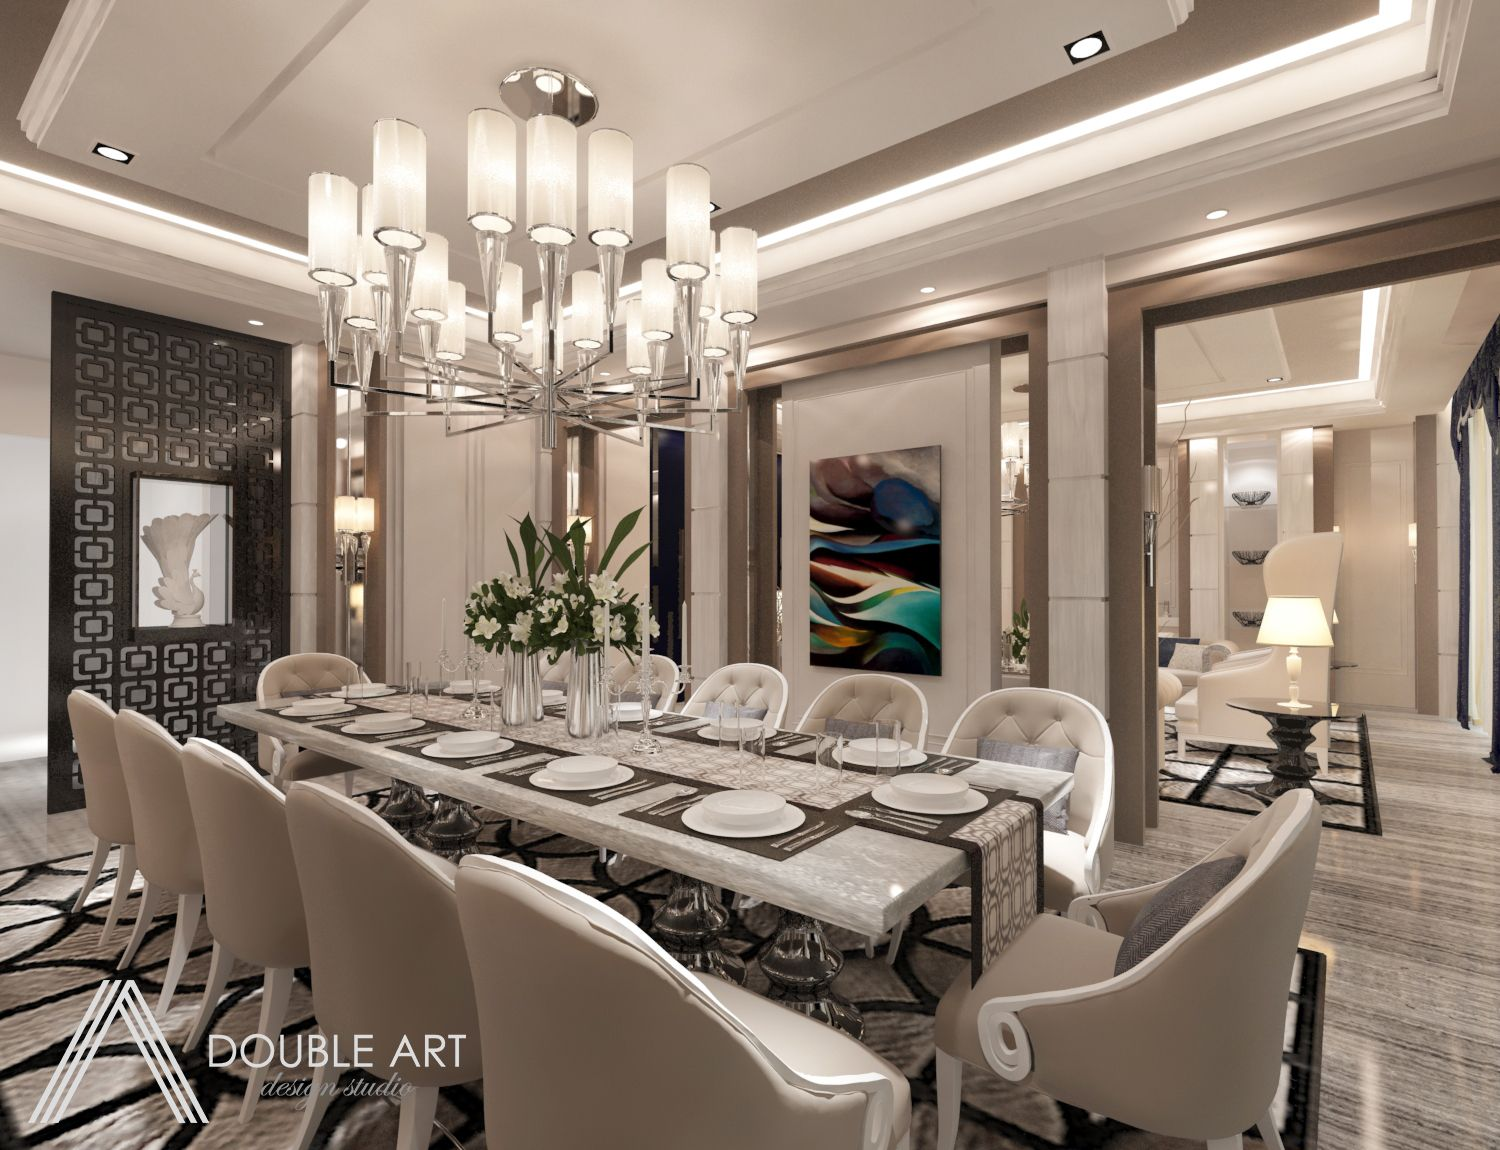 Bungalow In Ampang Hilir This Opulent Dining Room With